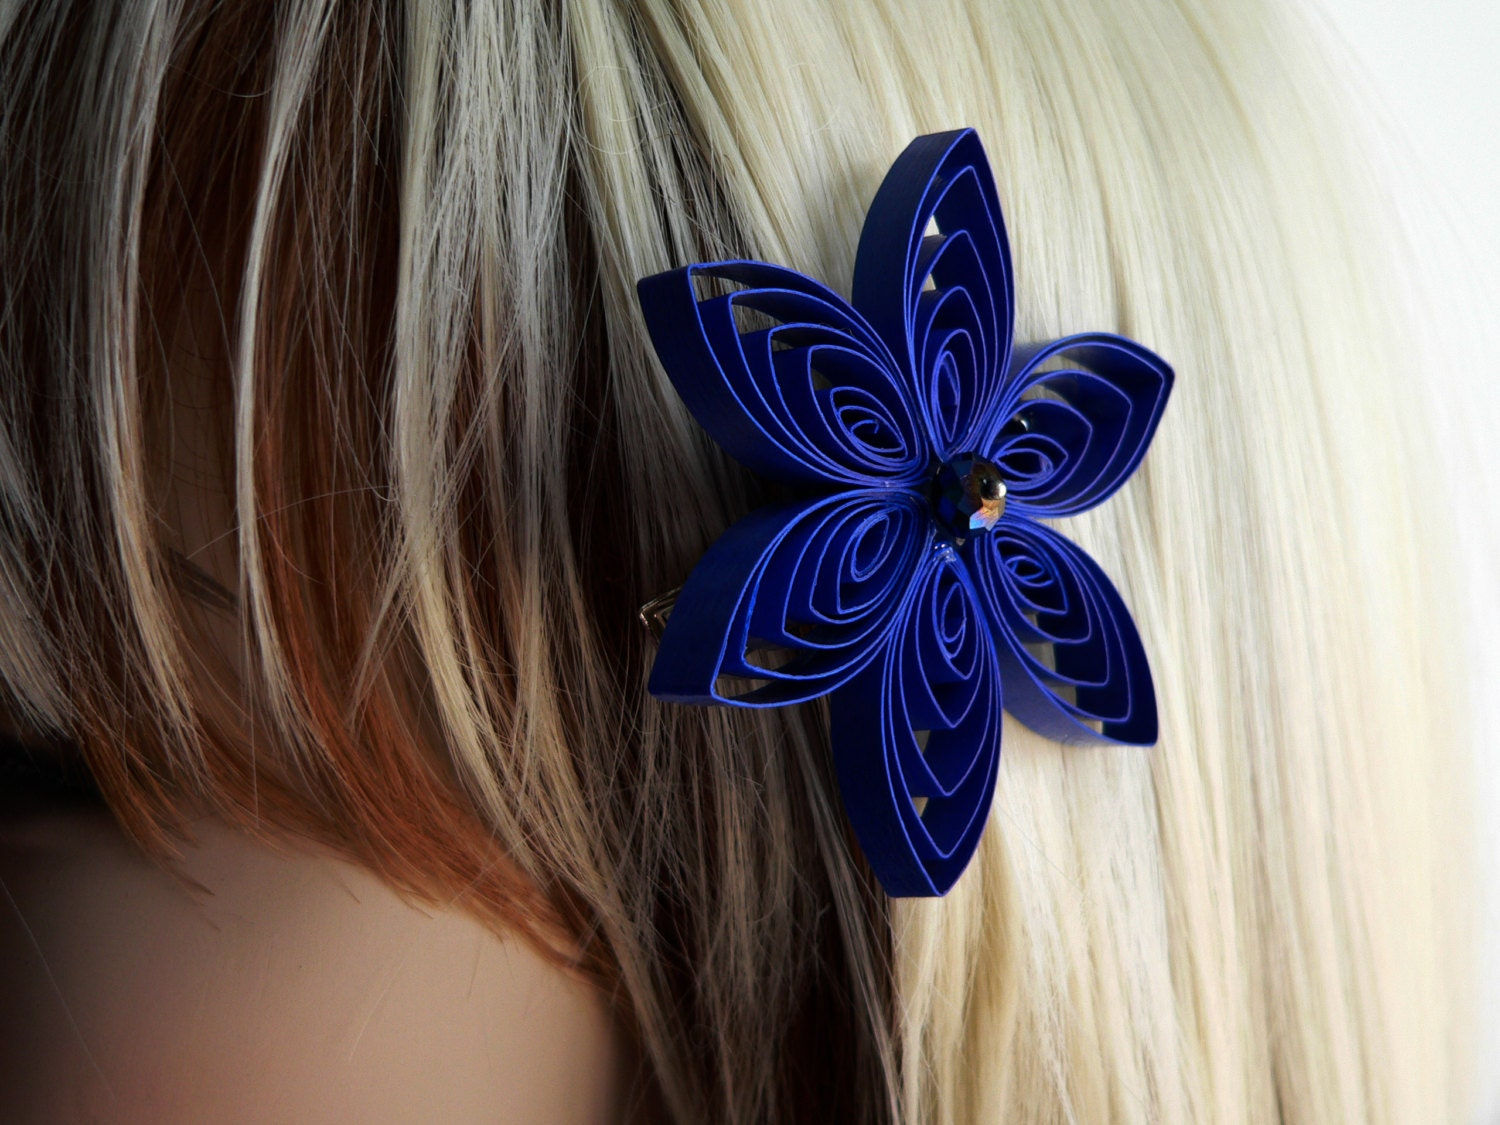 Blue Hair Flower Clips. Beauty. Hair Care. Styling Accessories. Blue Hair Flower Clips. Showing 40 of results that match your query. Product - Tropical Flower Light Blue and White Hair Clip With Yellow Center. Product Image. Price $ Product Title. Tropical Flower Light Blue and White Hair Clip With Yellow Center.